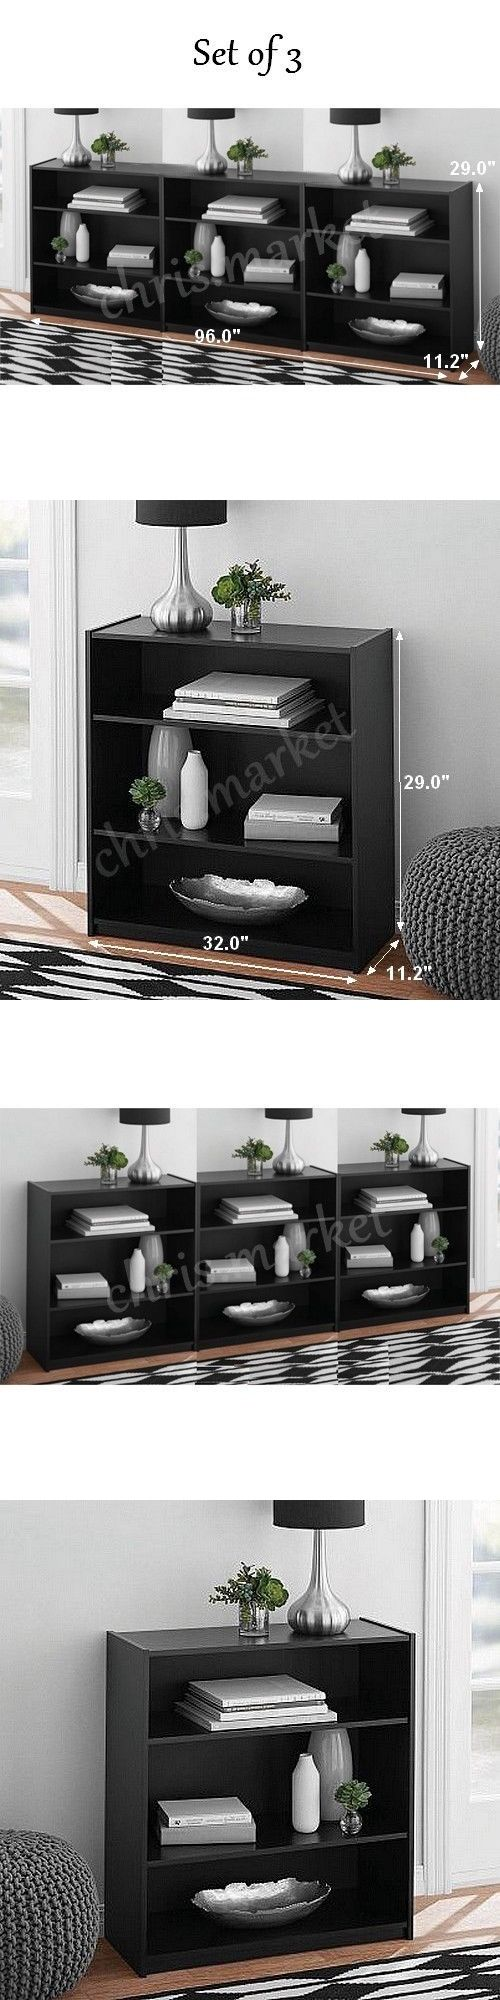 Bookcases 3199: Mainstays 3-Shelf Bookcase Set Of 3 Storage Furniture Bookshelf Black-Oak New! -> BUY IT NOW ONLY: $59.89 on eBay!